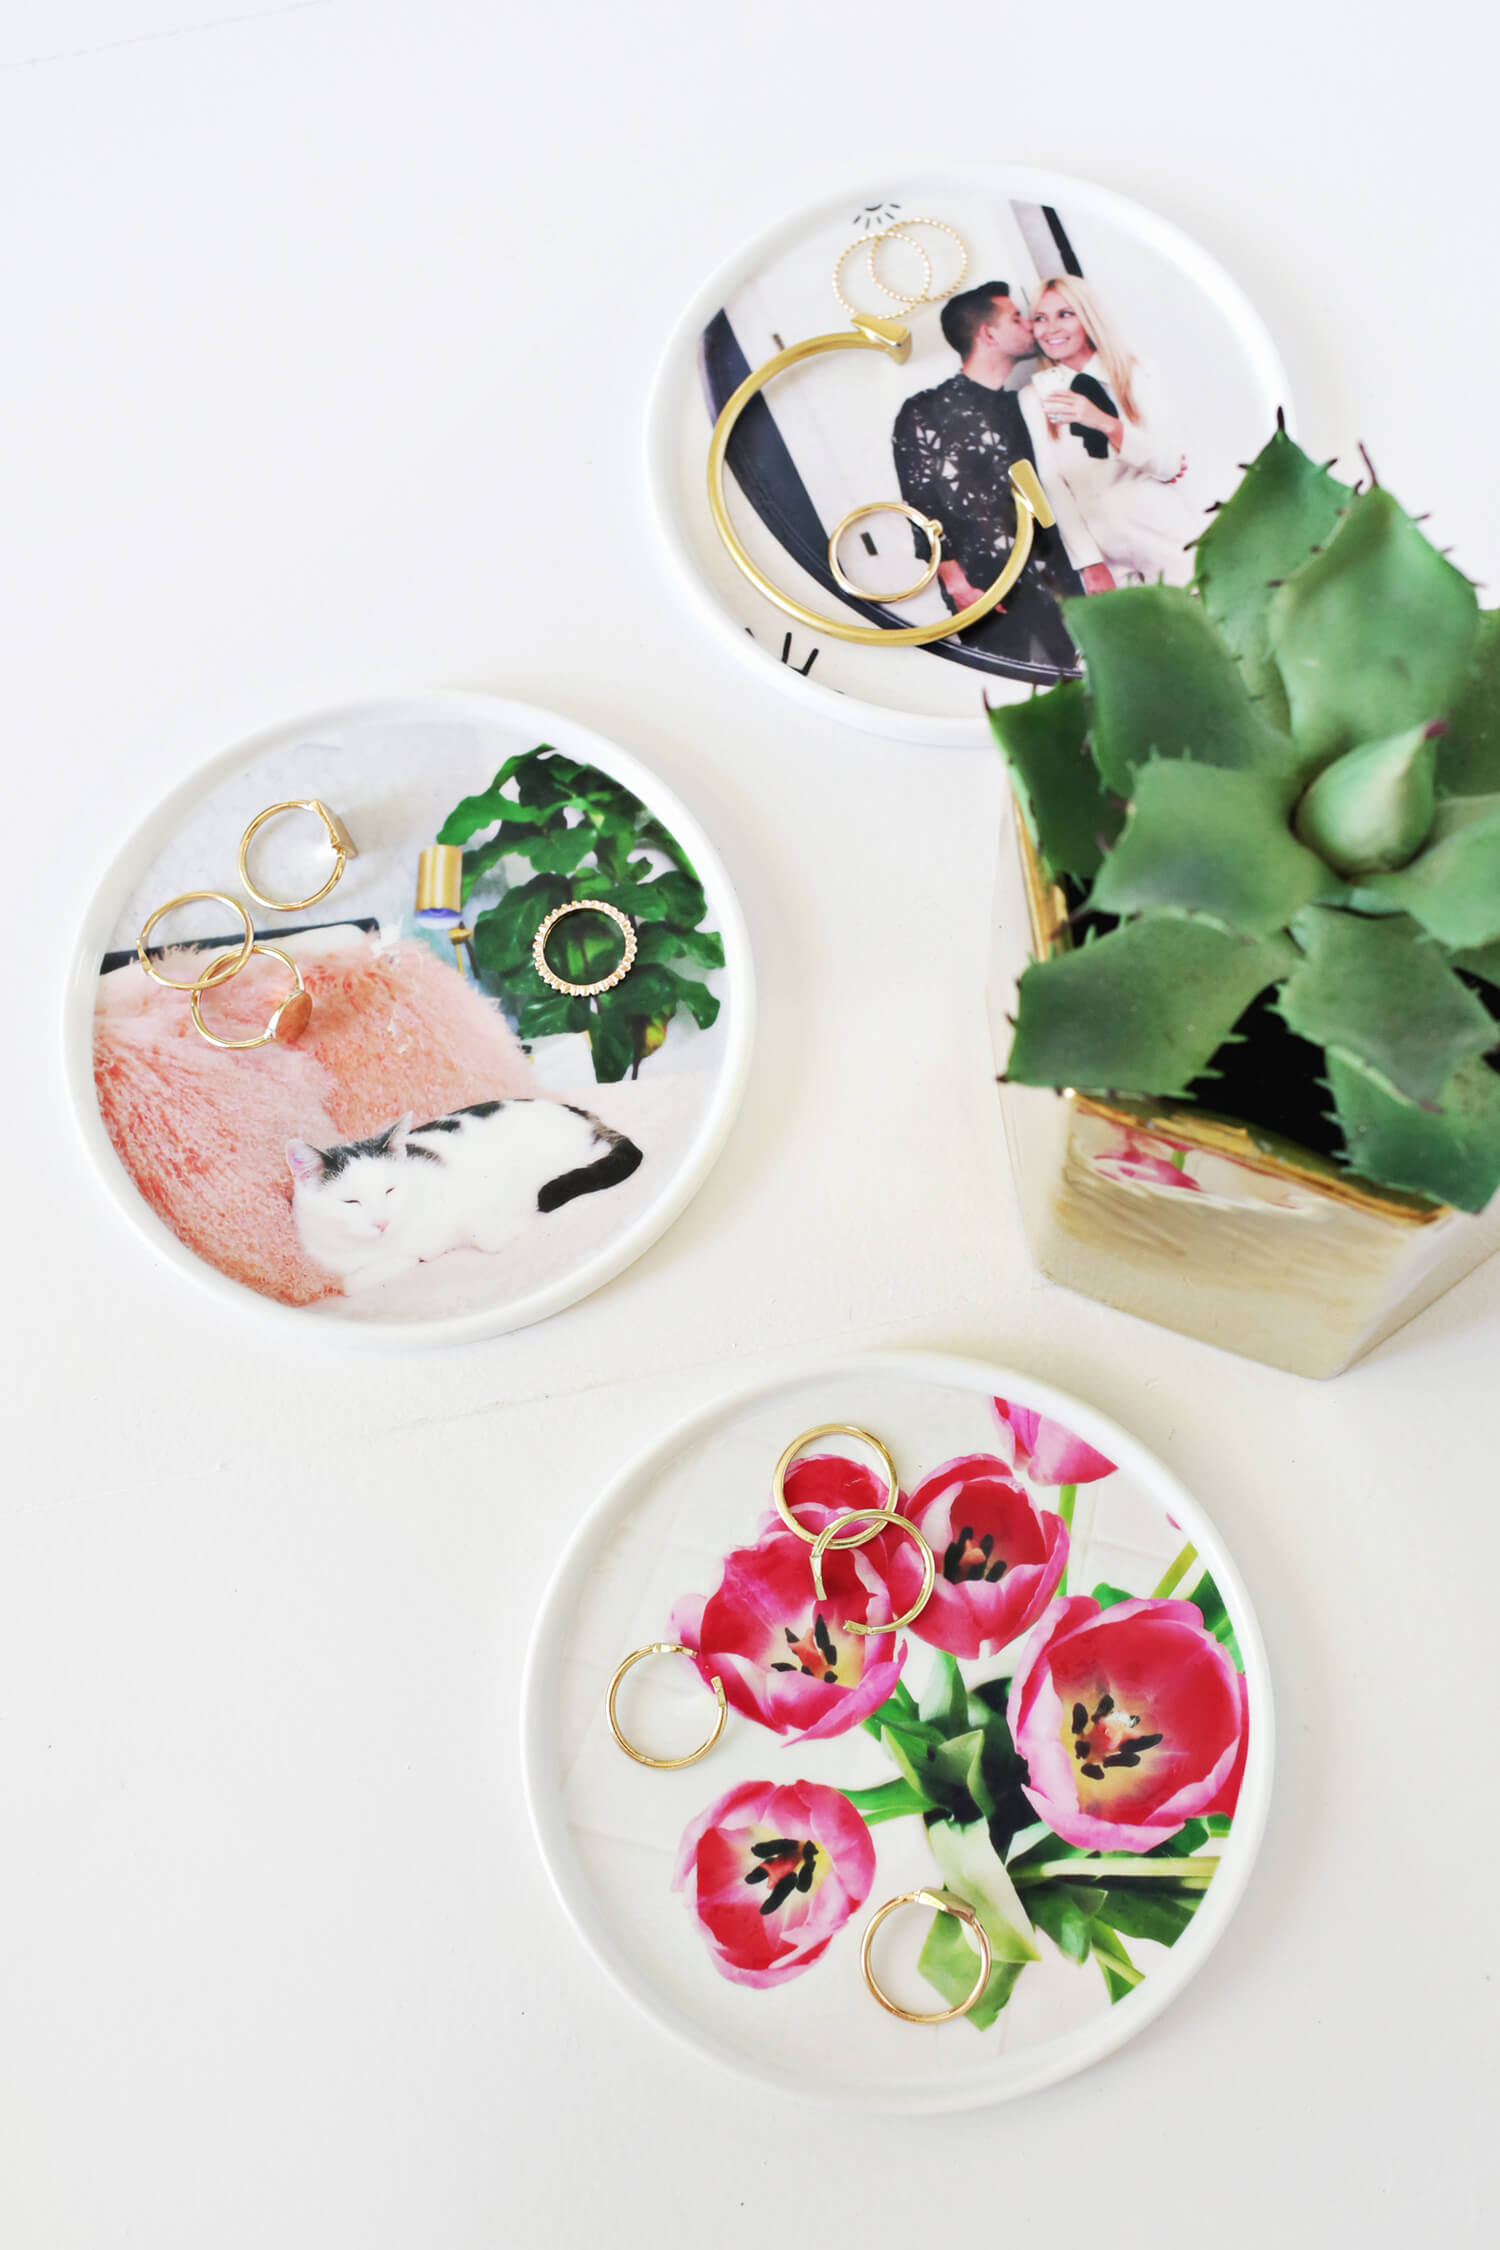 Make Your Own Personalized Photo Ring Dish! (click through for tutorial